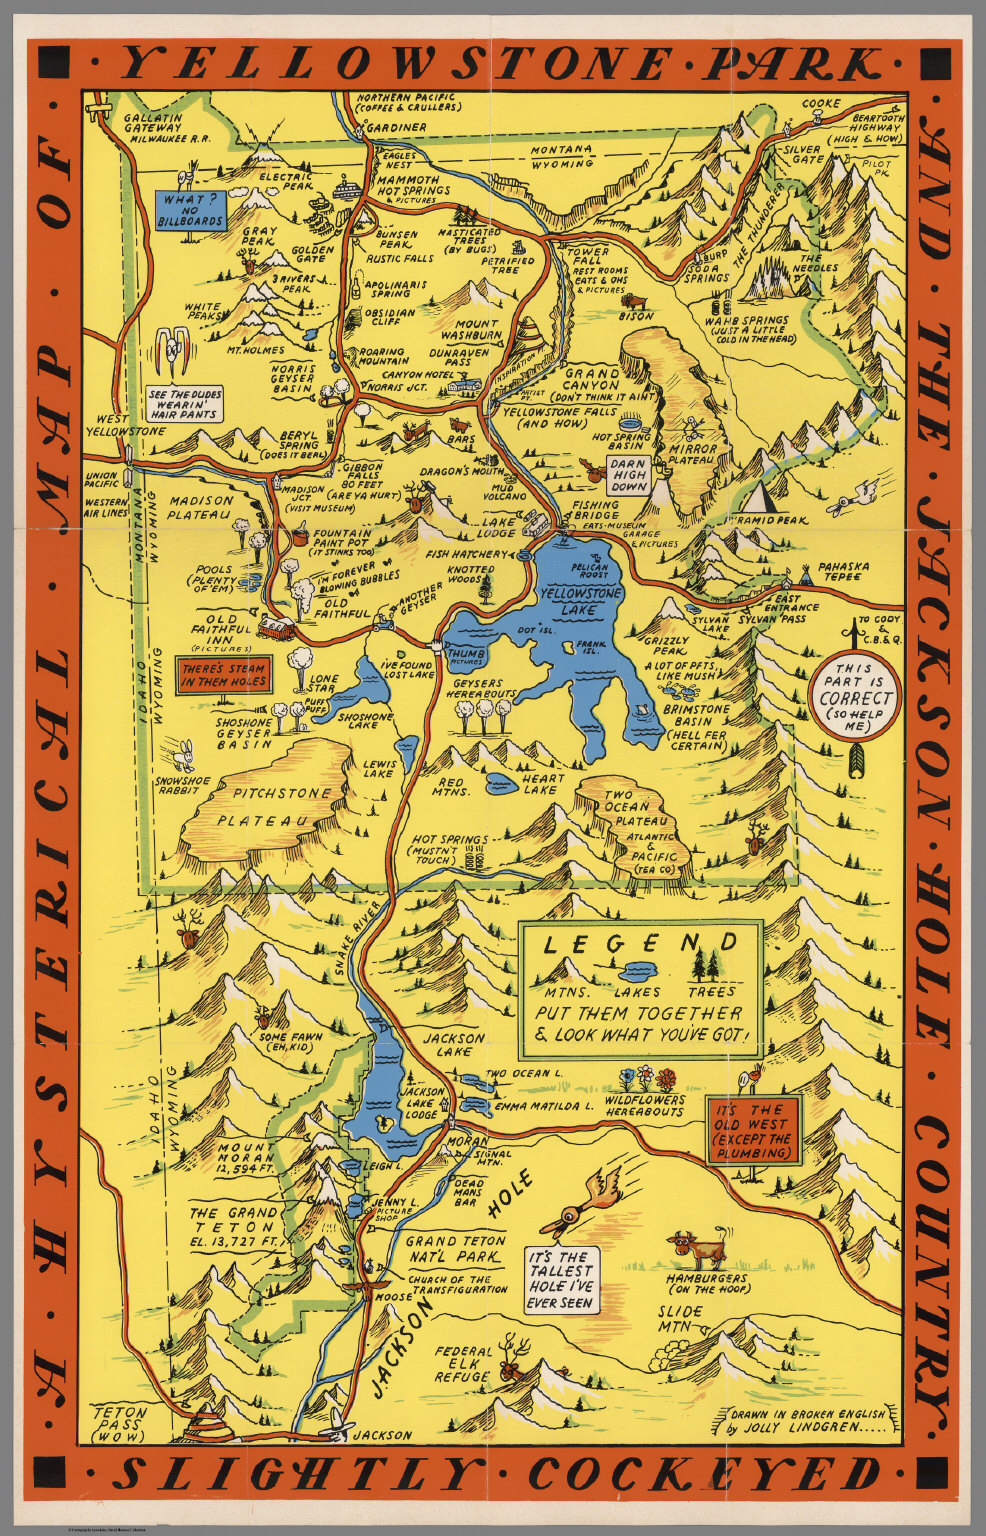 A Hysterical Map Of The Yellowstone Park And The Jackson Hole Country